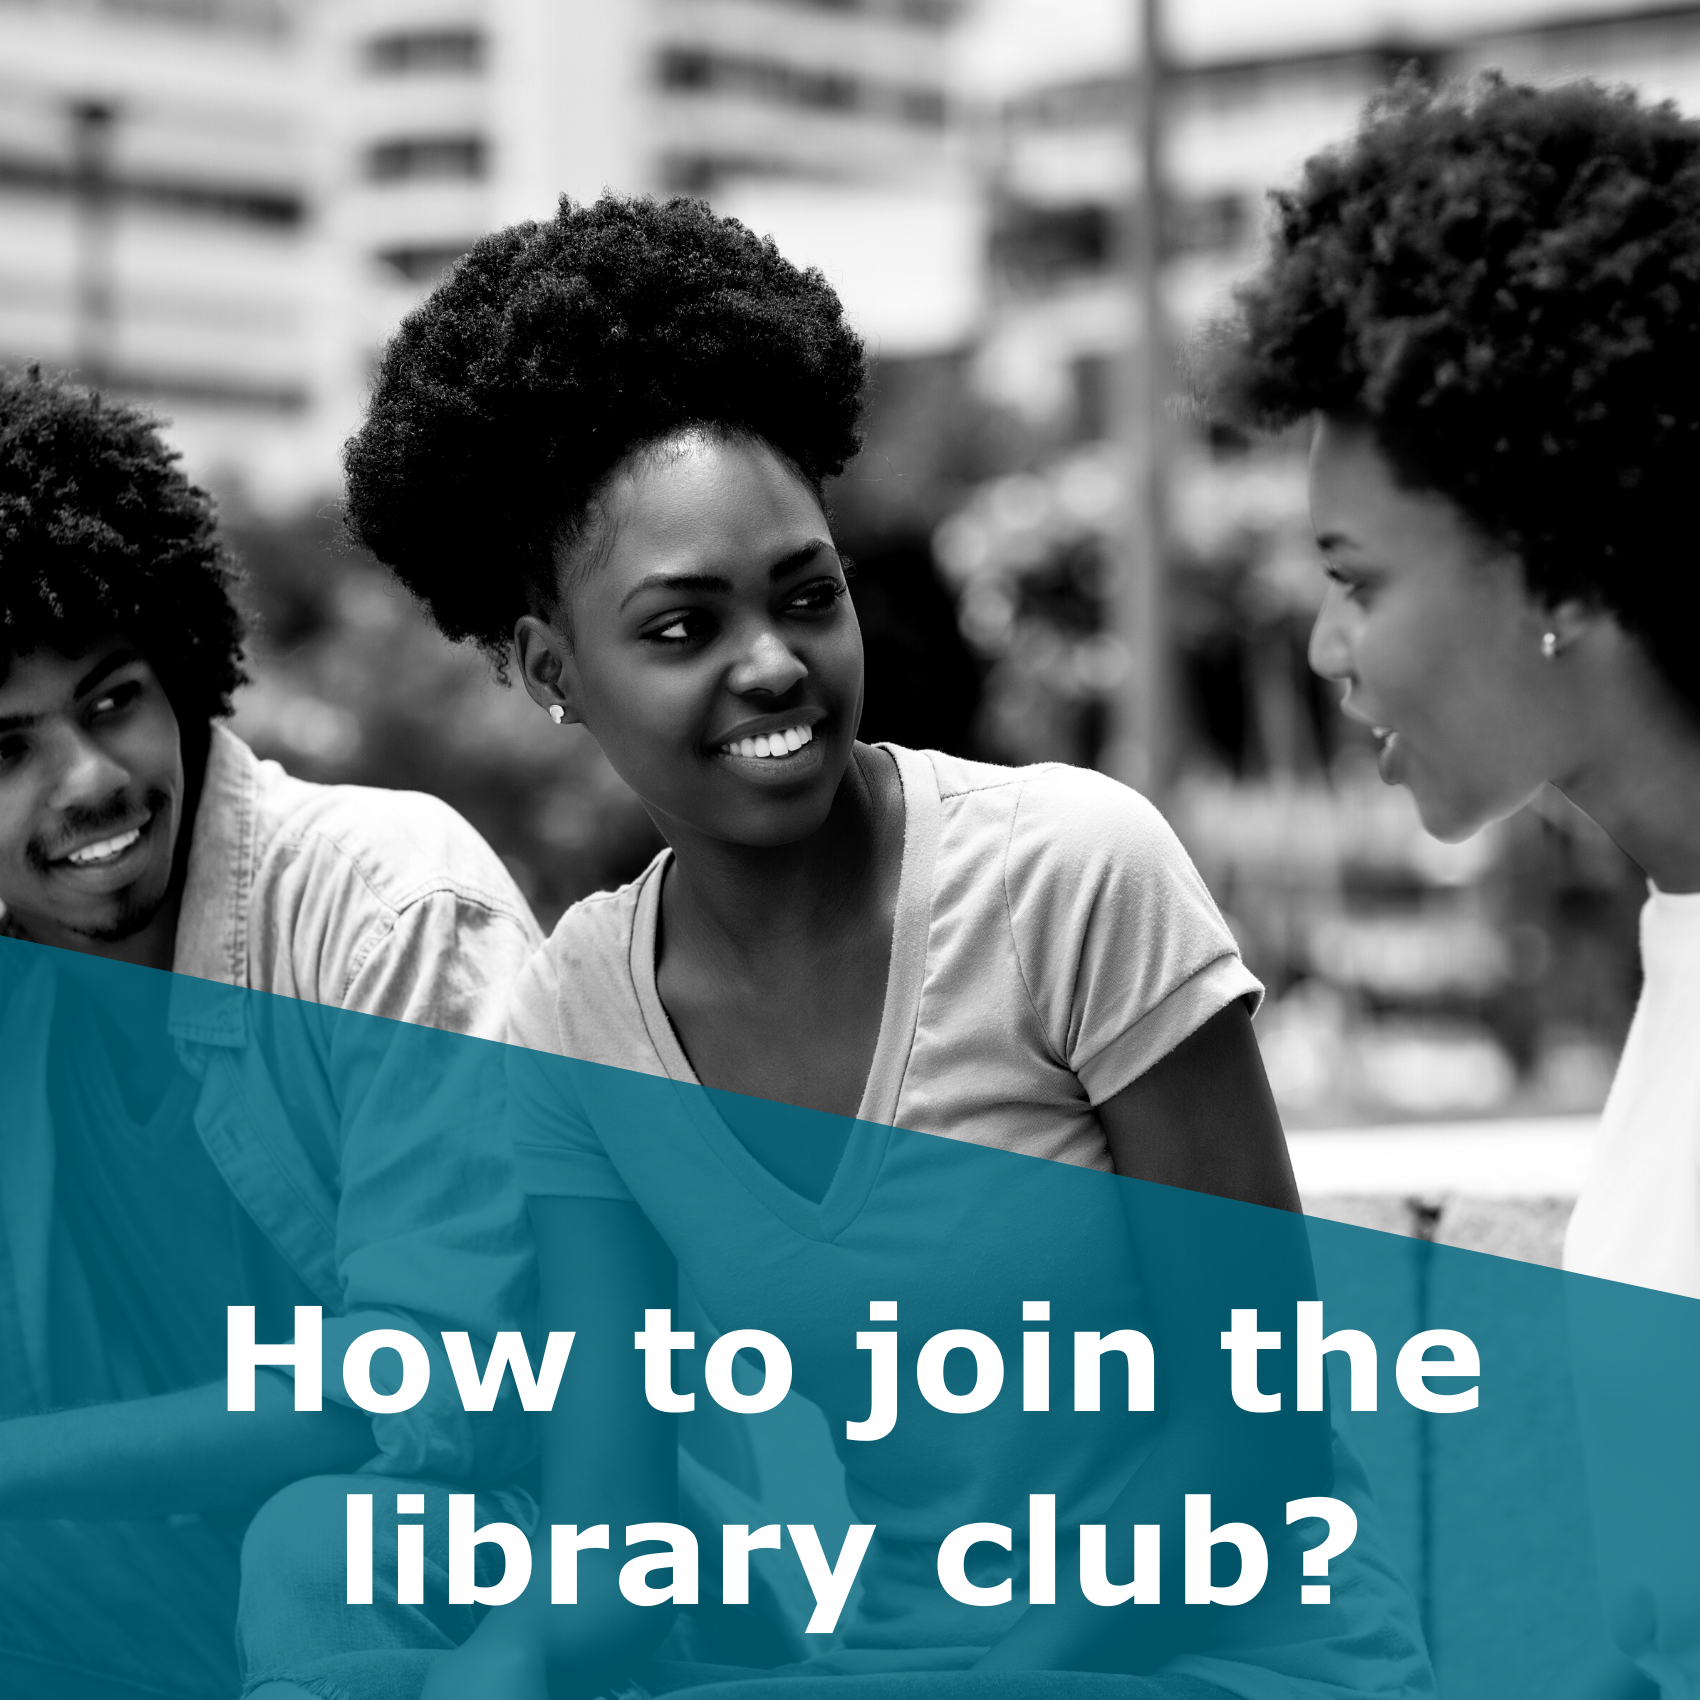 How to join the library club?